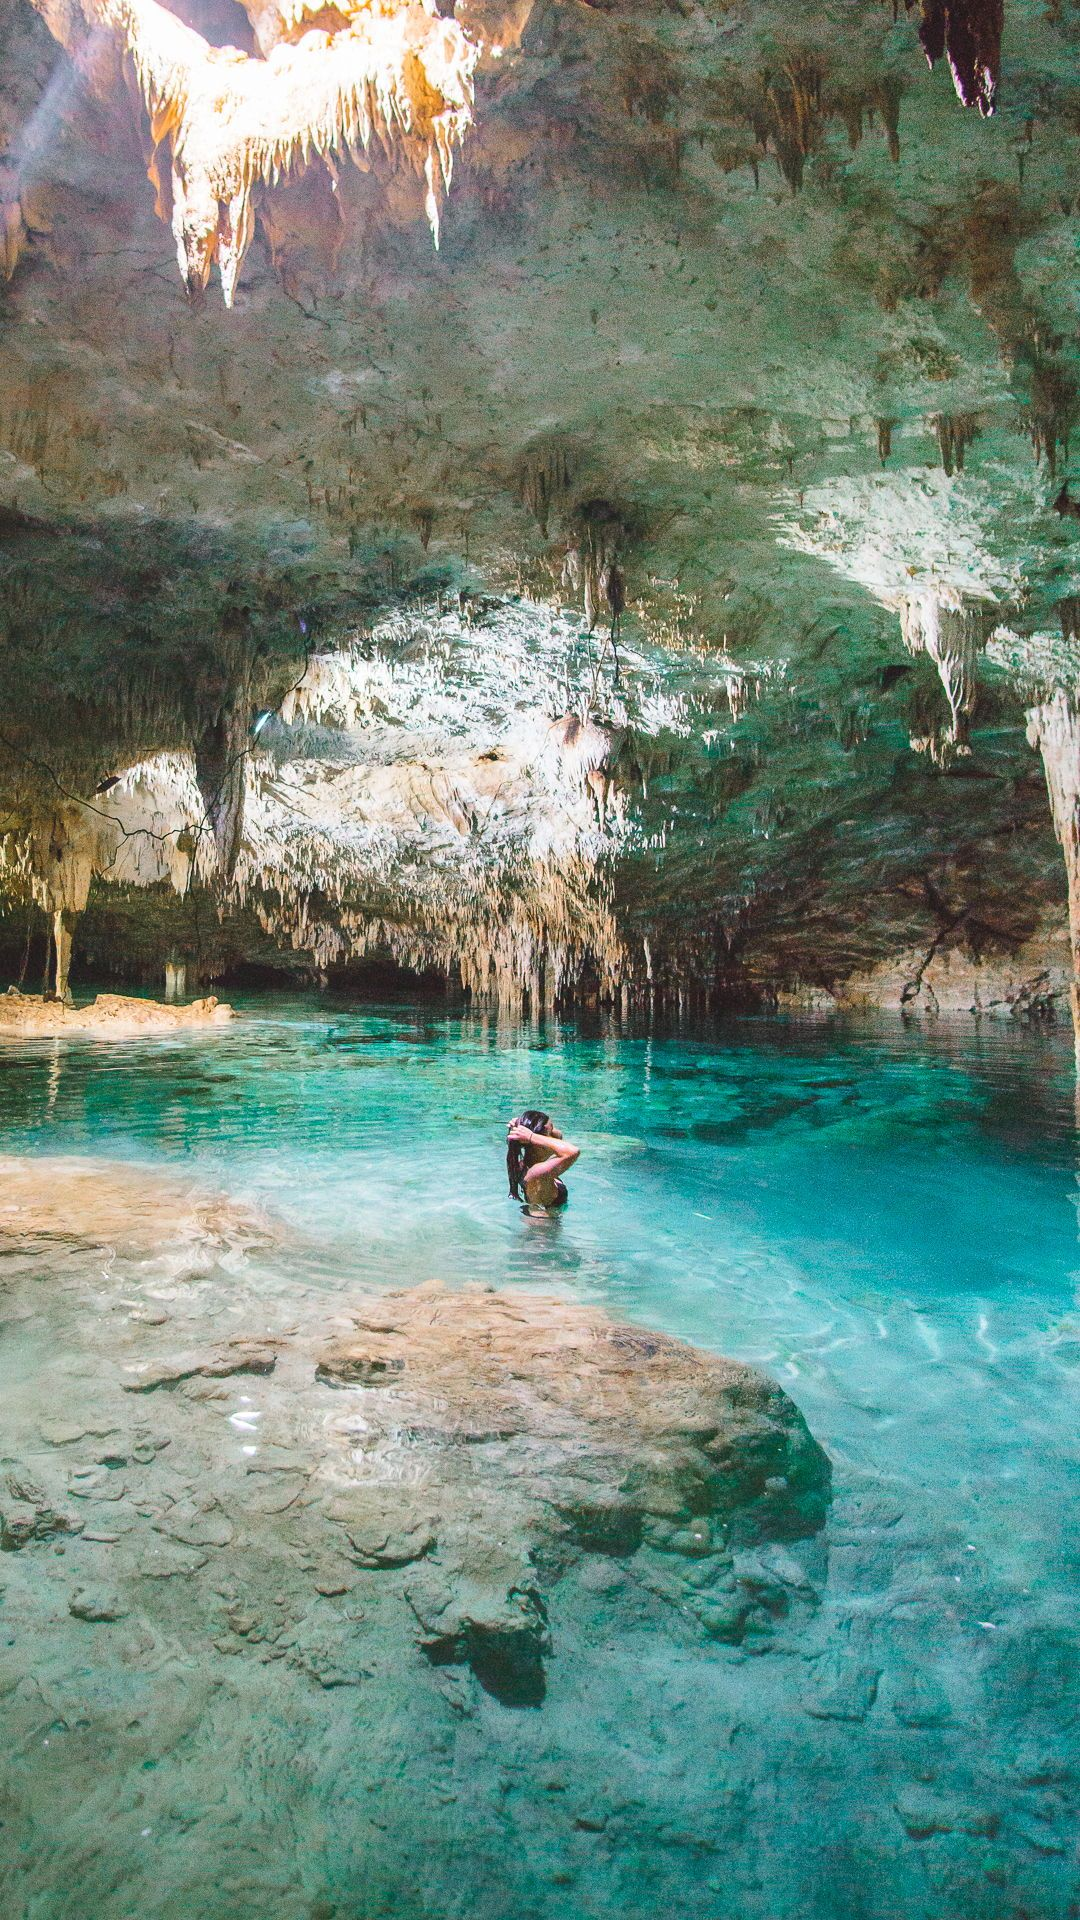 b993fa5f390a 10 Best Cenotes To Visit In Yucatan Peninsula, Mexico in 2019 ...